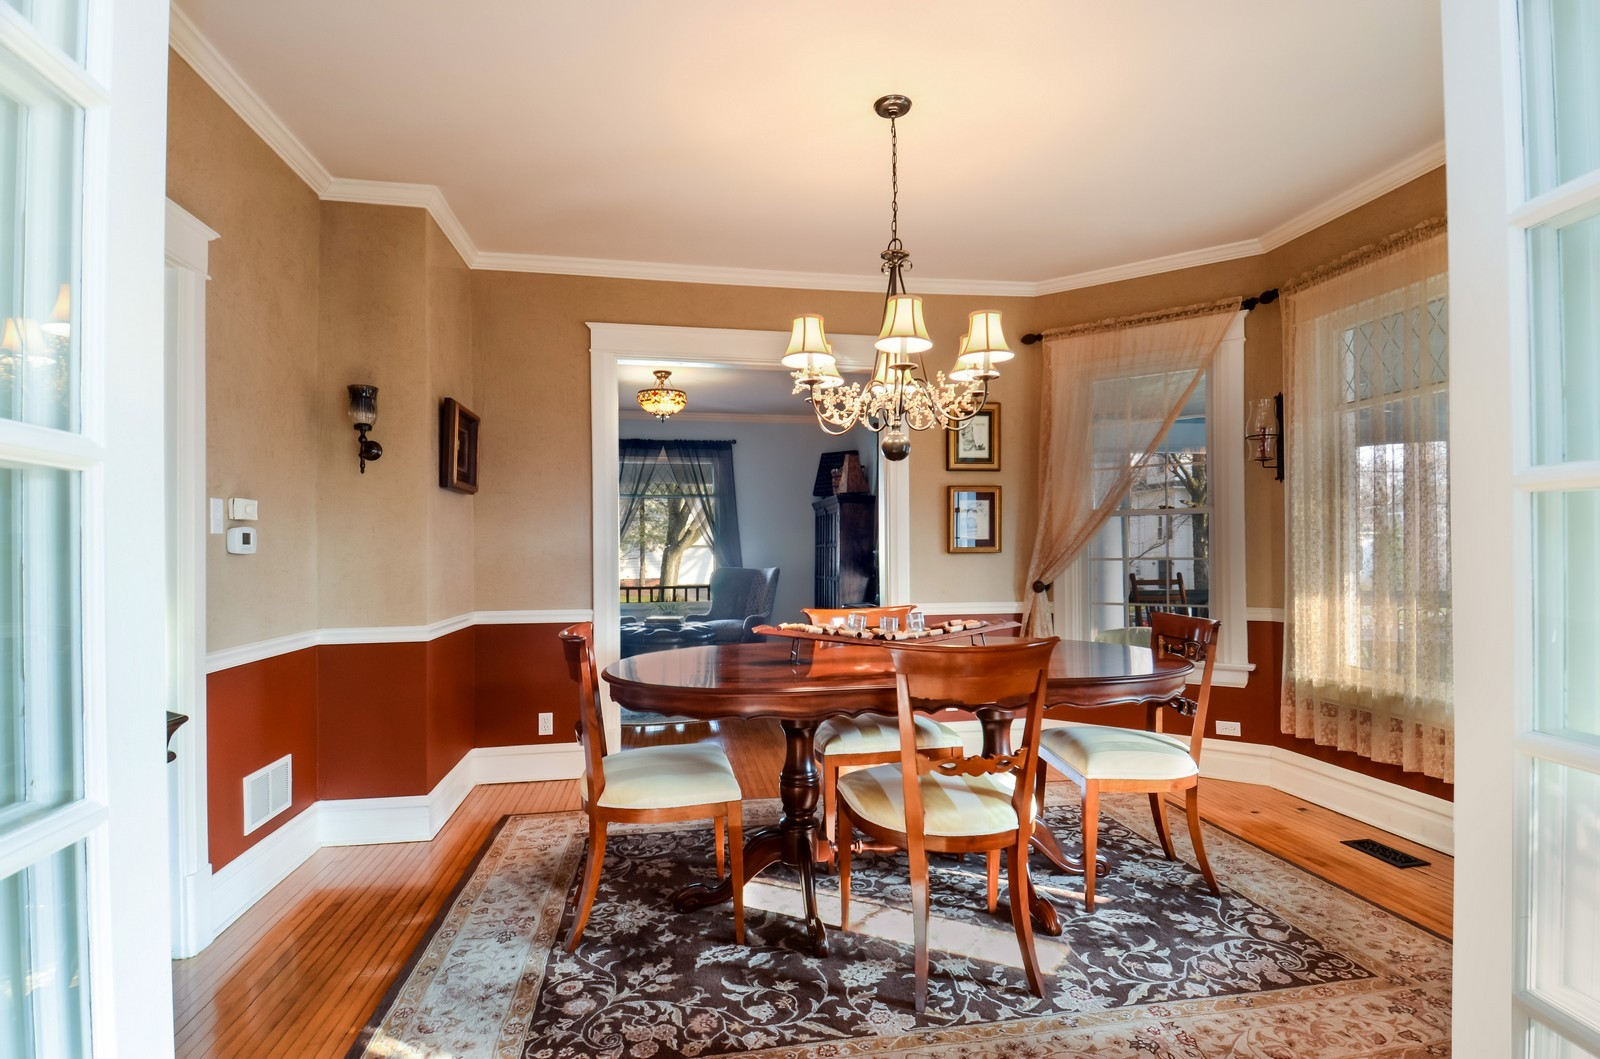 Real Estate Photography - 406 S Grant St, Hinsdale, IL, 60521 - Living Room / Dining Room